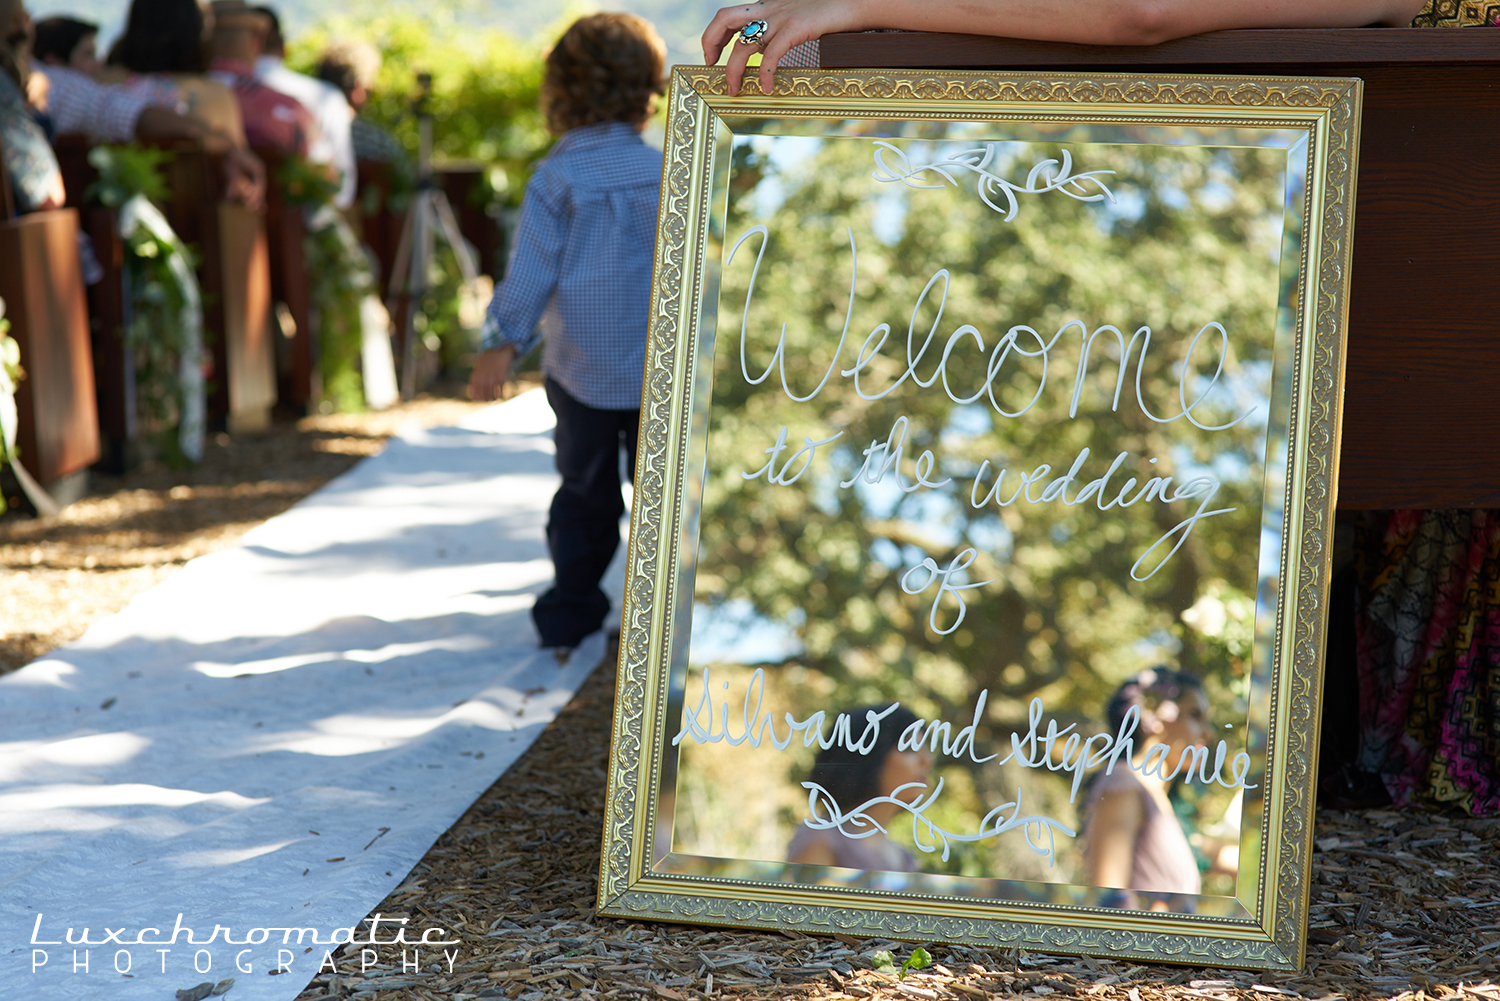 070817_Steph_Sil-San-Francisco-Bay-Area-Carmel-Valley-Monterey-Bay-California-Wedding-Los-Laureles-Lodge-Bride-Gown-Dress-Groom-Engaged-Knot-Bridesmaids-Luxchromatic-Portrait-Sony-Alpha-a7Rii-Interfit-Profoto-Best-Photographer-Photography-0287 copy.jpg